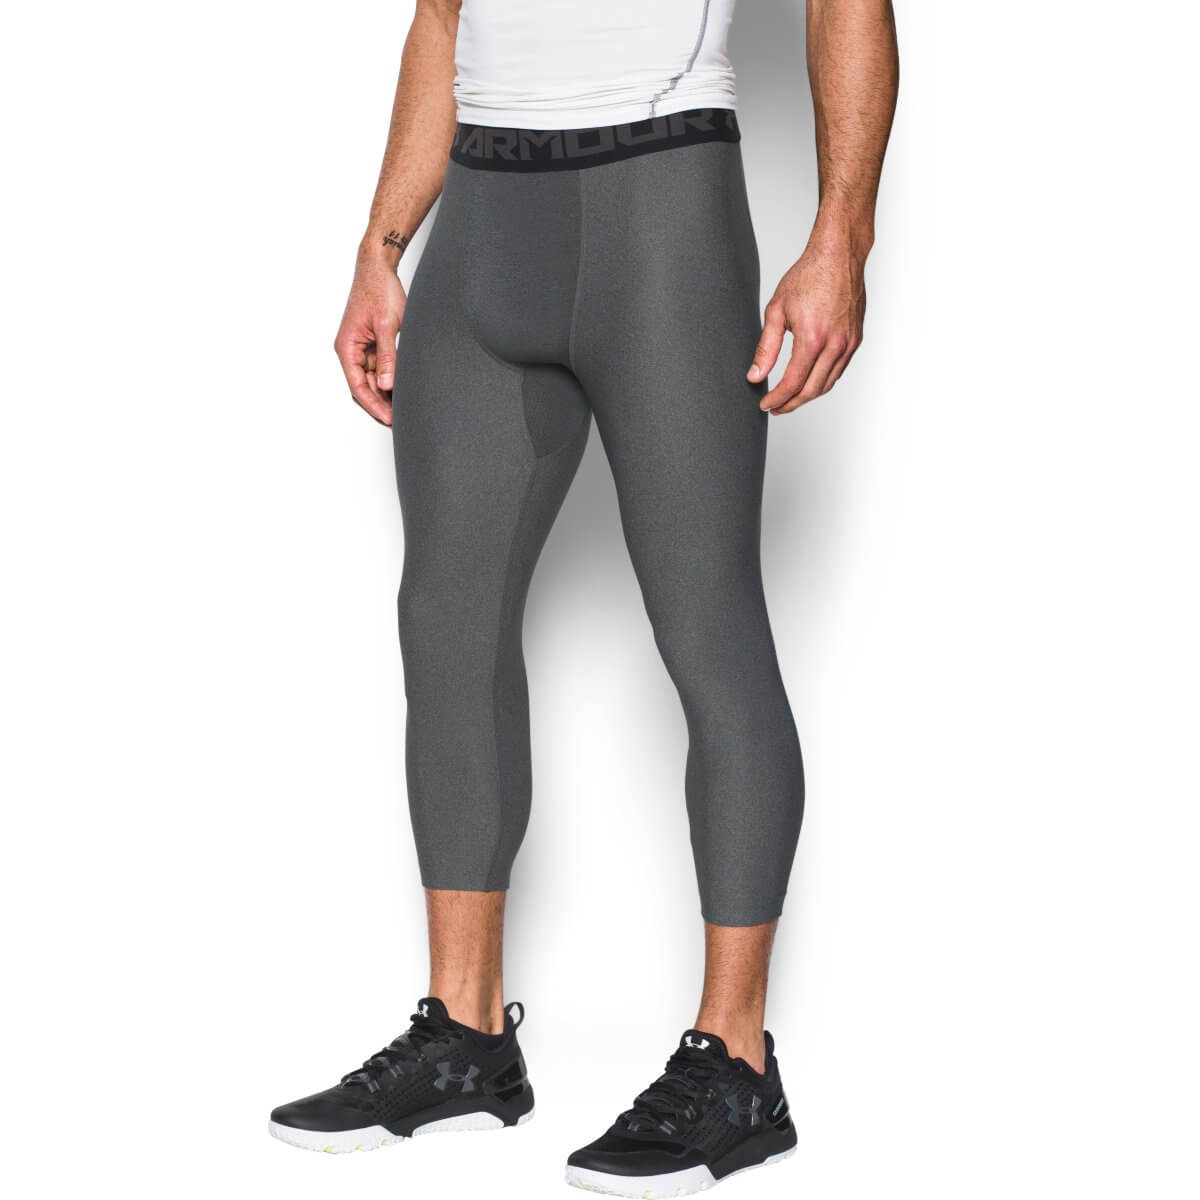 Under Armour Kompresné legíny HG Armour 2.0 Legging Grey